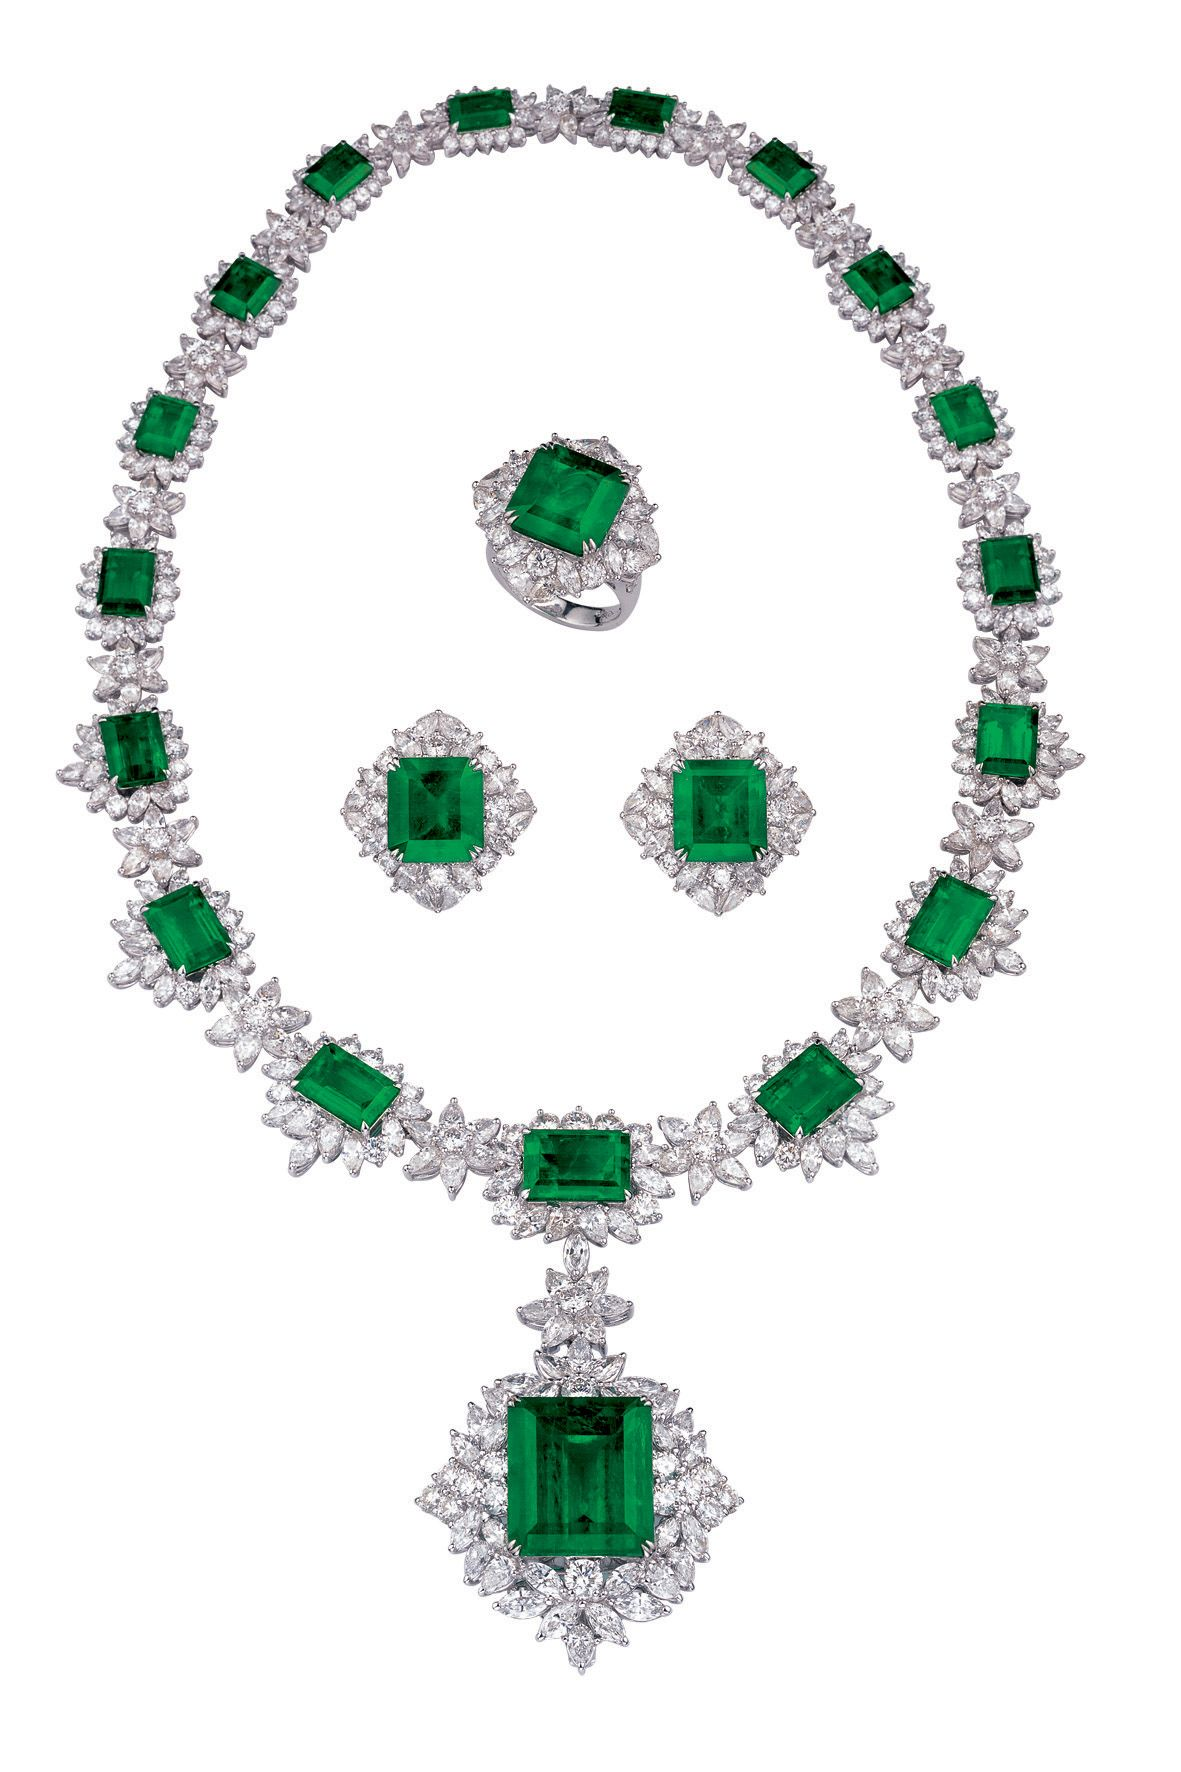 Nelson Jewellery Arts Co Ltd Booth No 1E201 Green Necklace